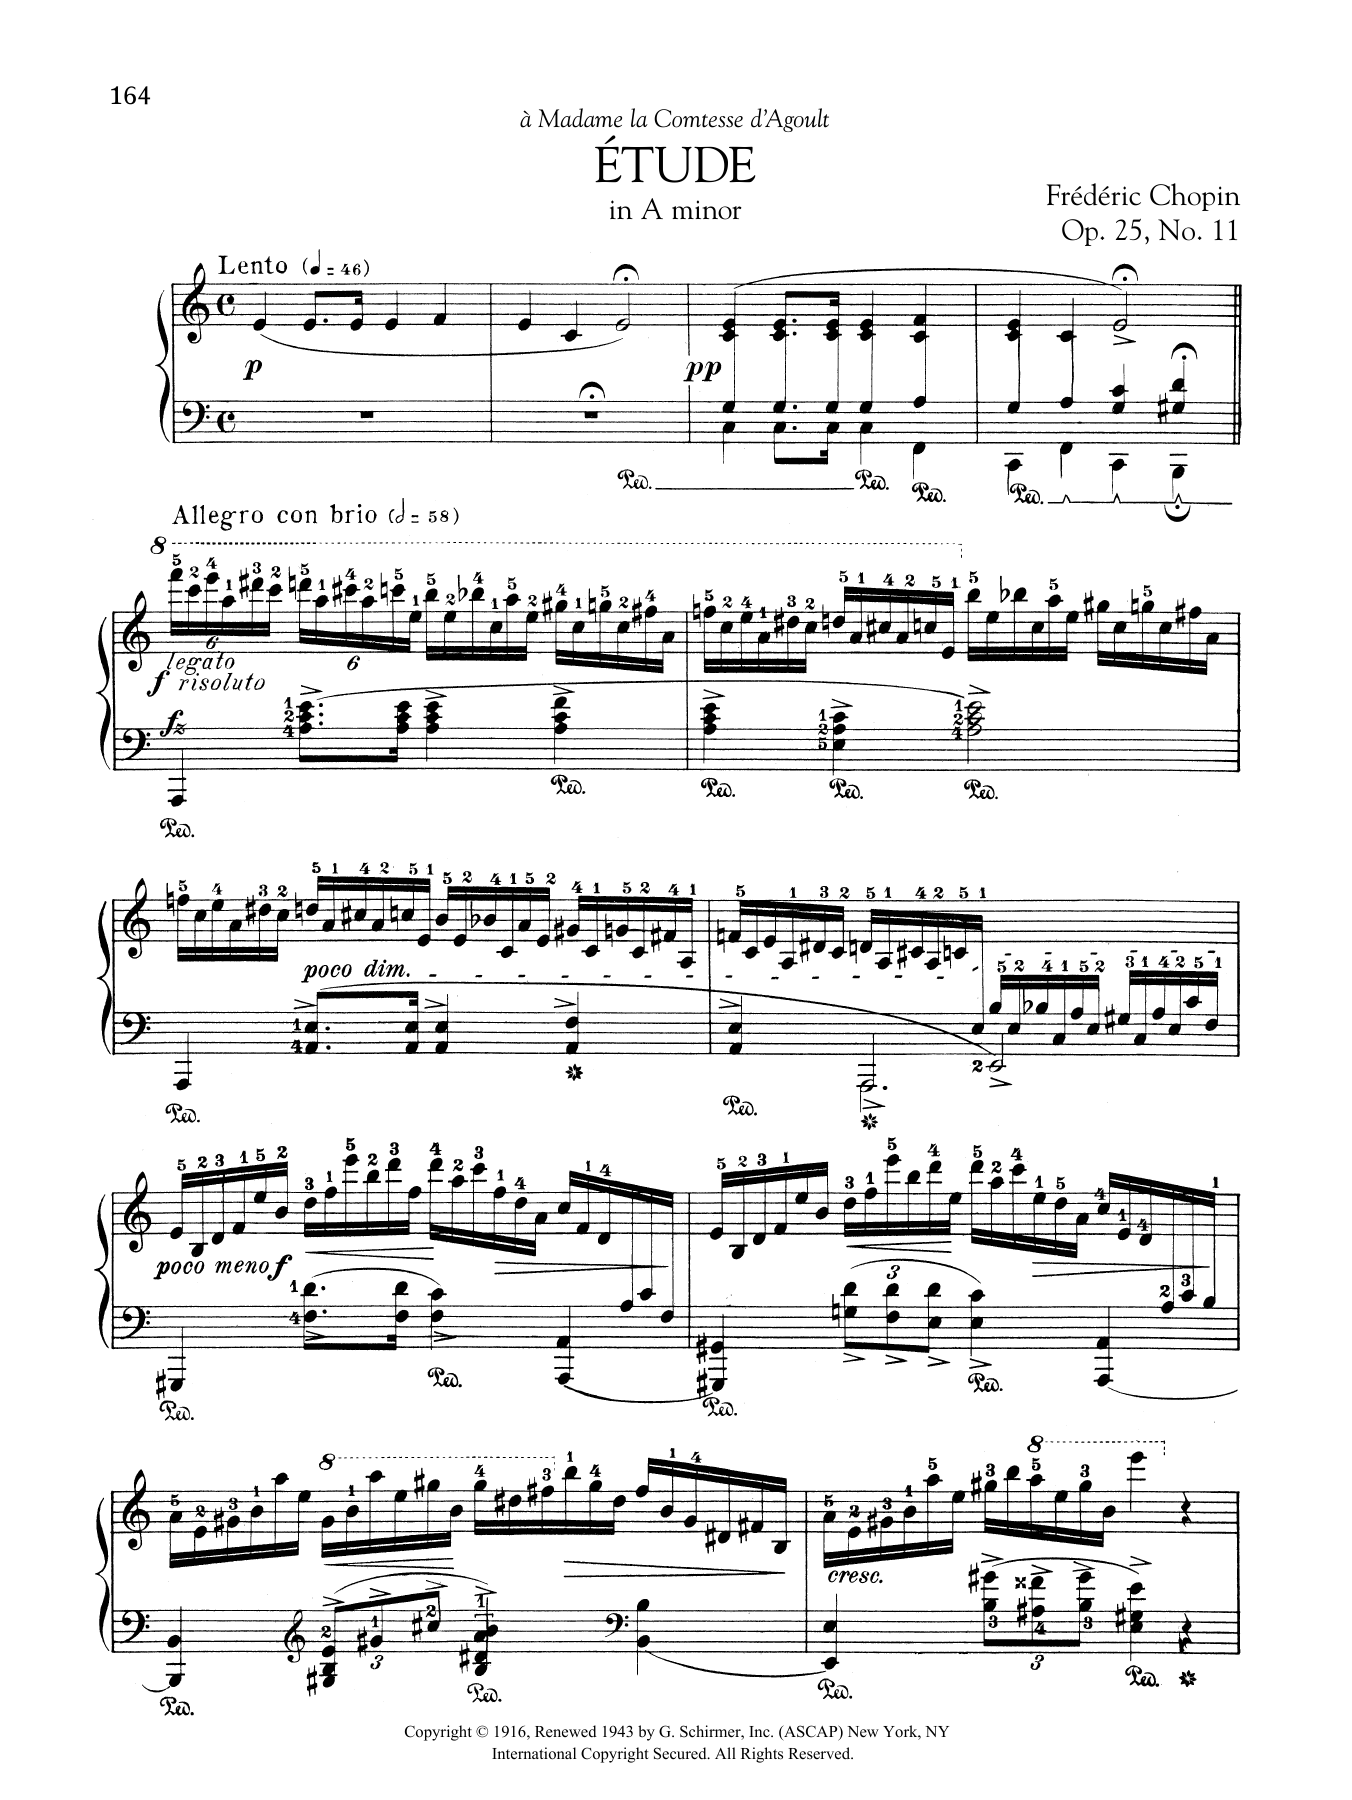 Etude in A minor, Op. 25, No. 11 Sheet Music